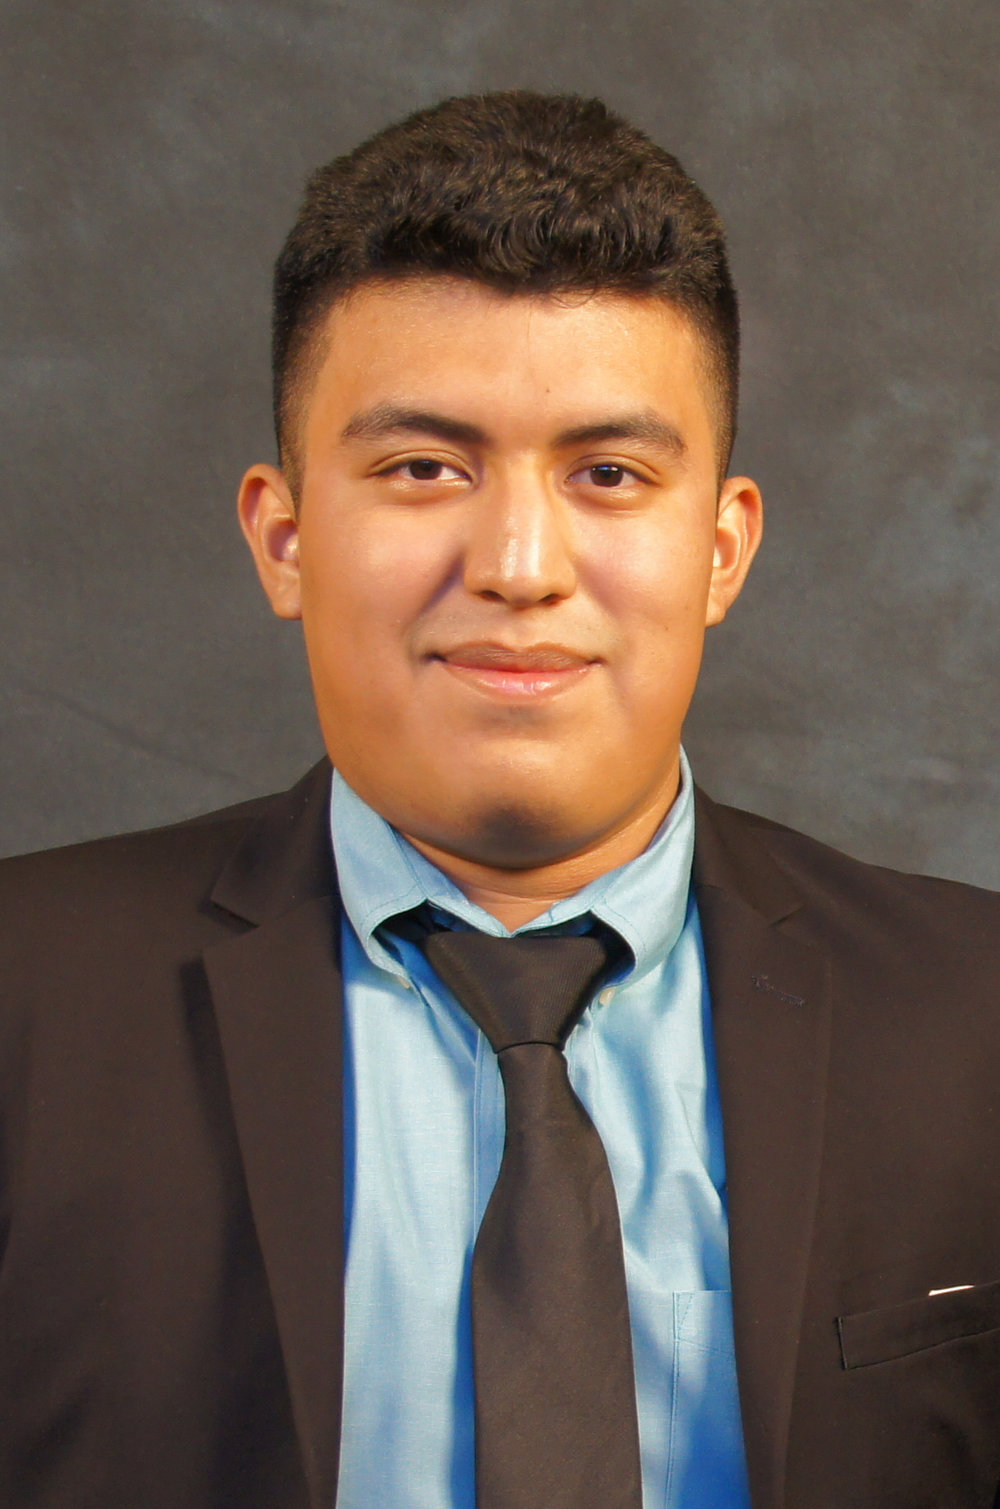 Alex Rodriguez Graphic Design, Freshman Appalachian State HanesBrands, Inc. Scholarship